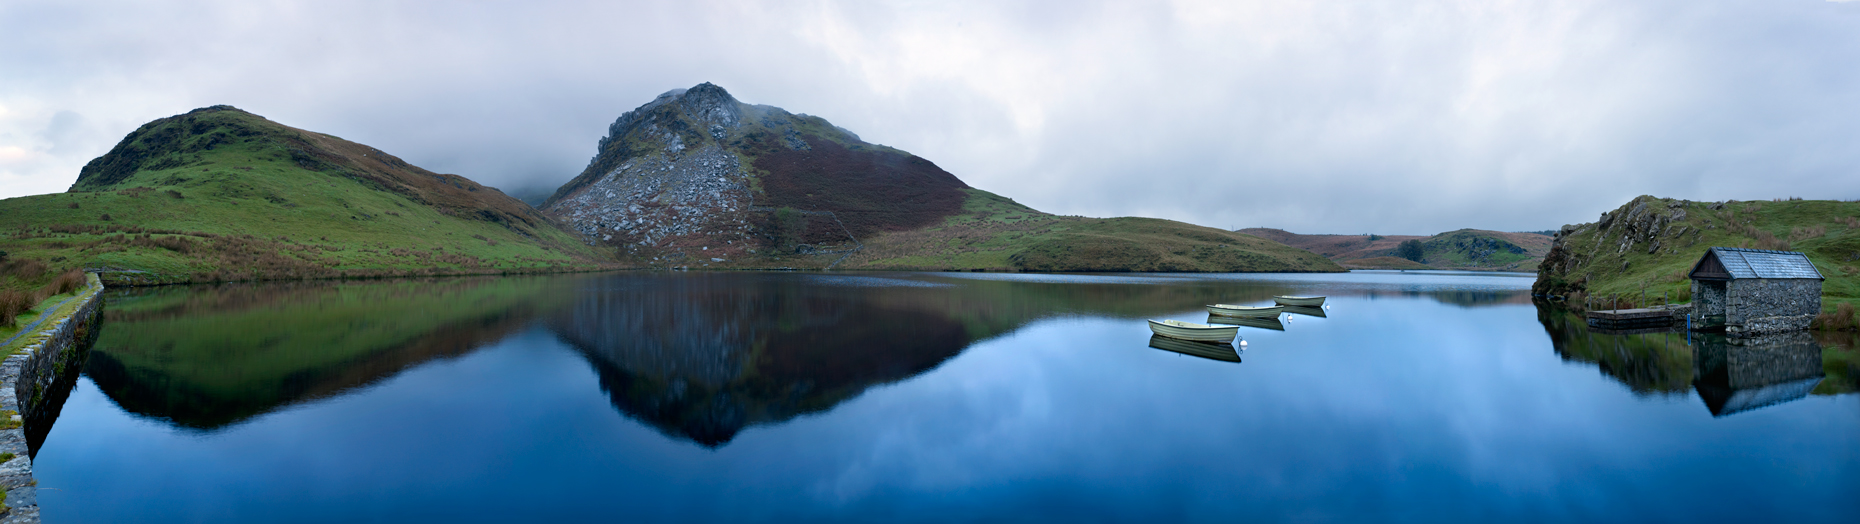 Jon Wyatt Photography - lake in Snowdonia